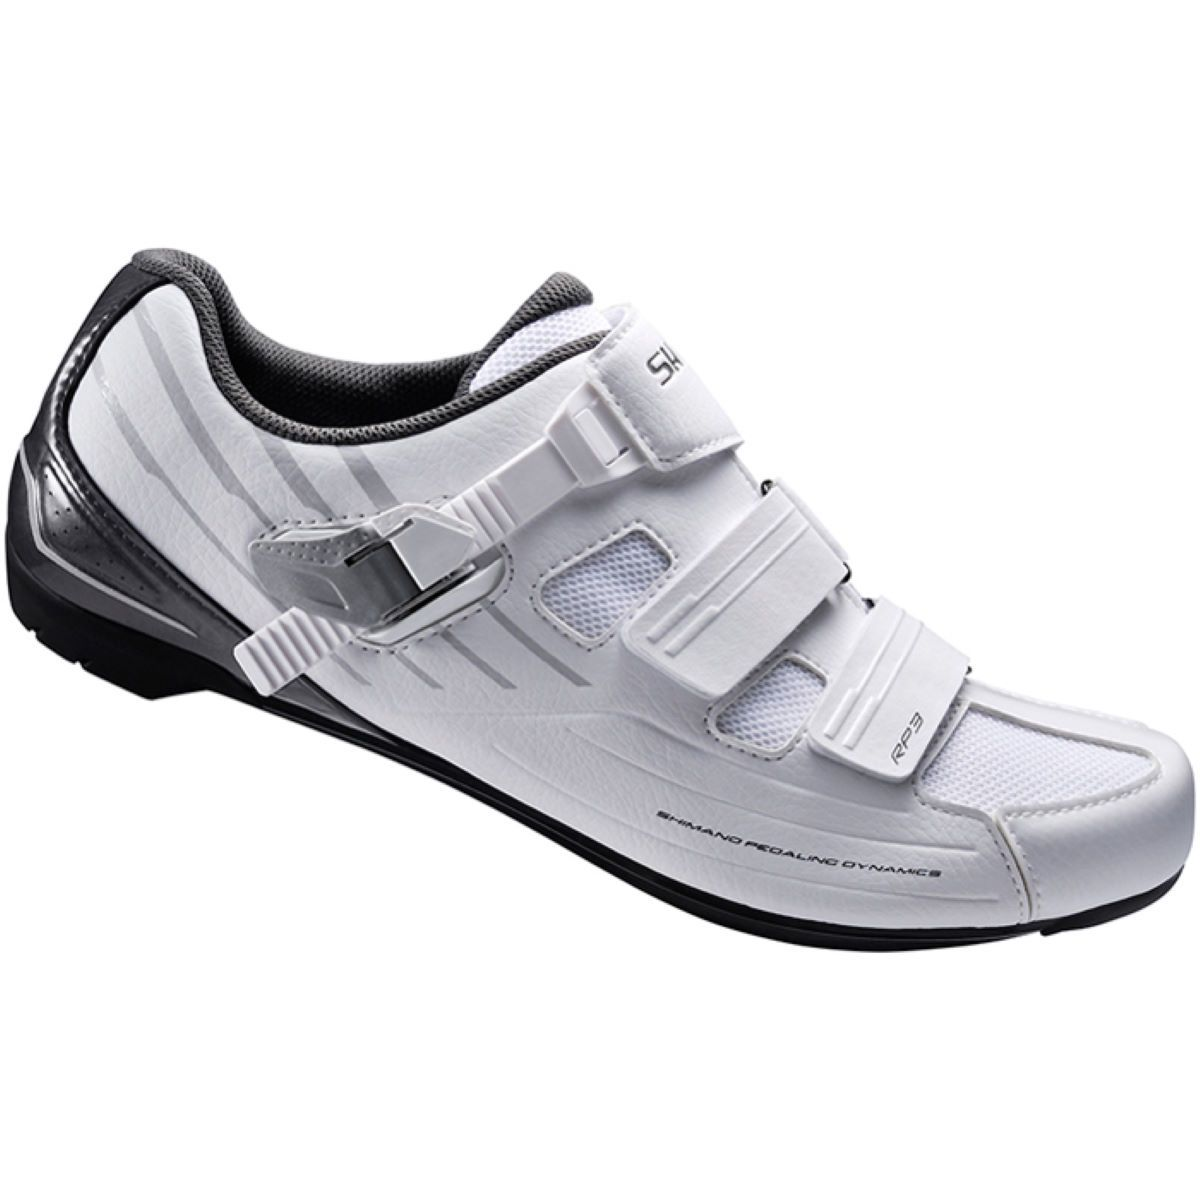 Shimano RP3 SPD-SL Road Shoes (Wide Fit